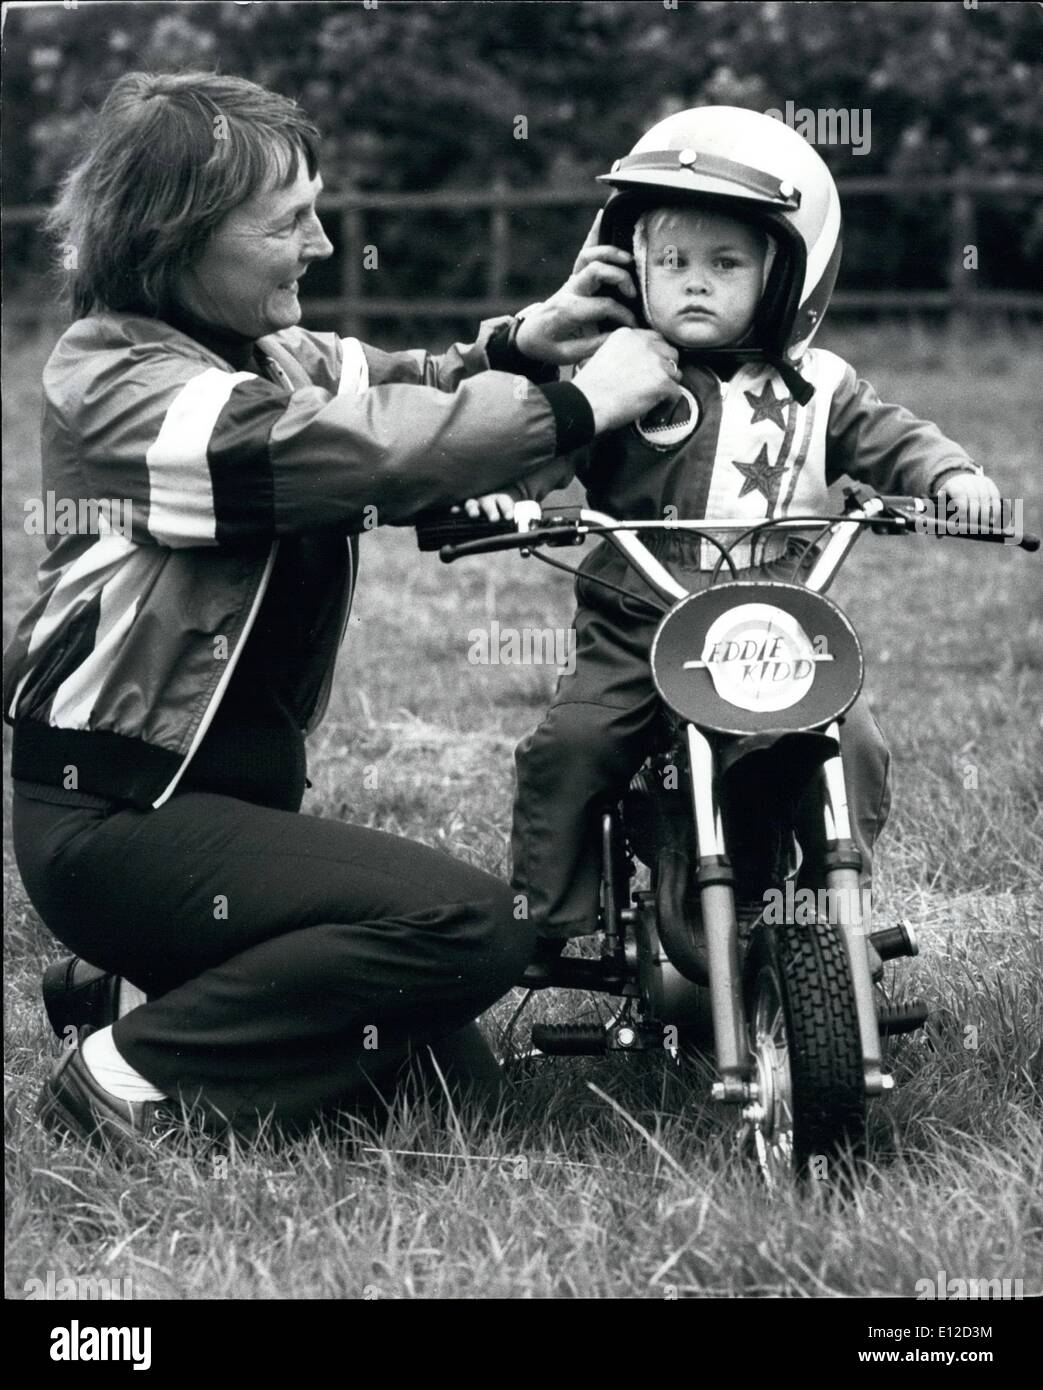 Dec. 19, 2011 - Bike stunts are kid's stuff at two – Watch out Eddie Kidd, you've got a rival. When little - Stock Image